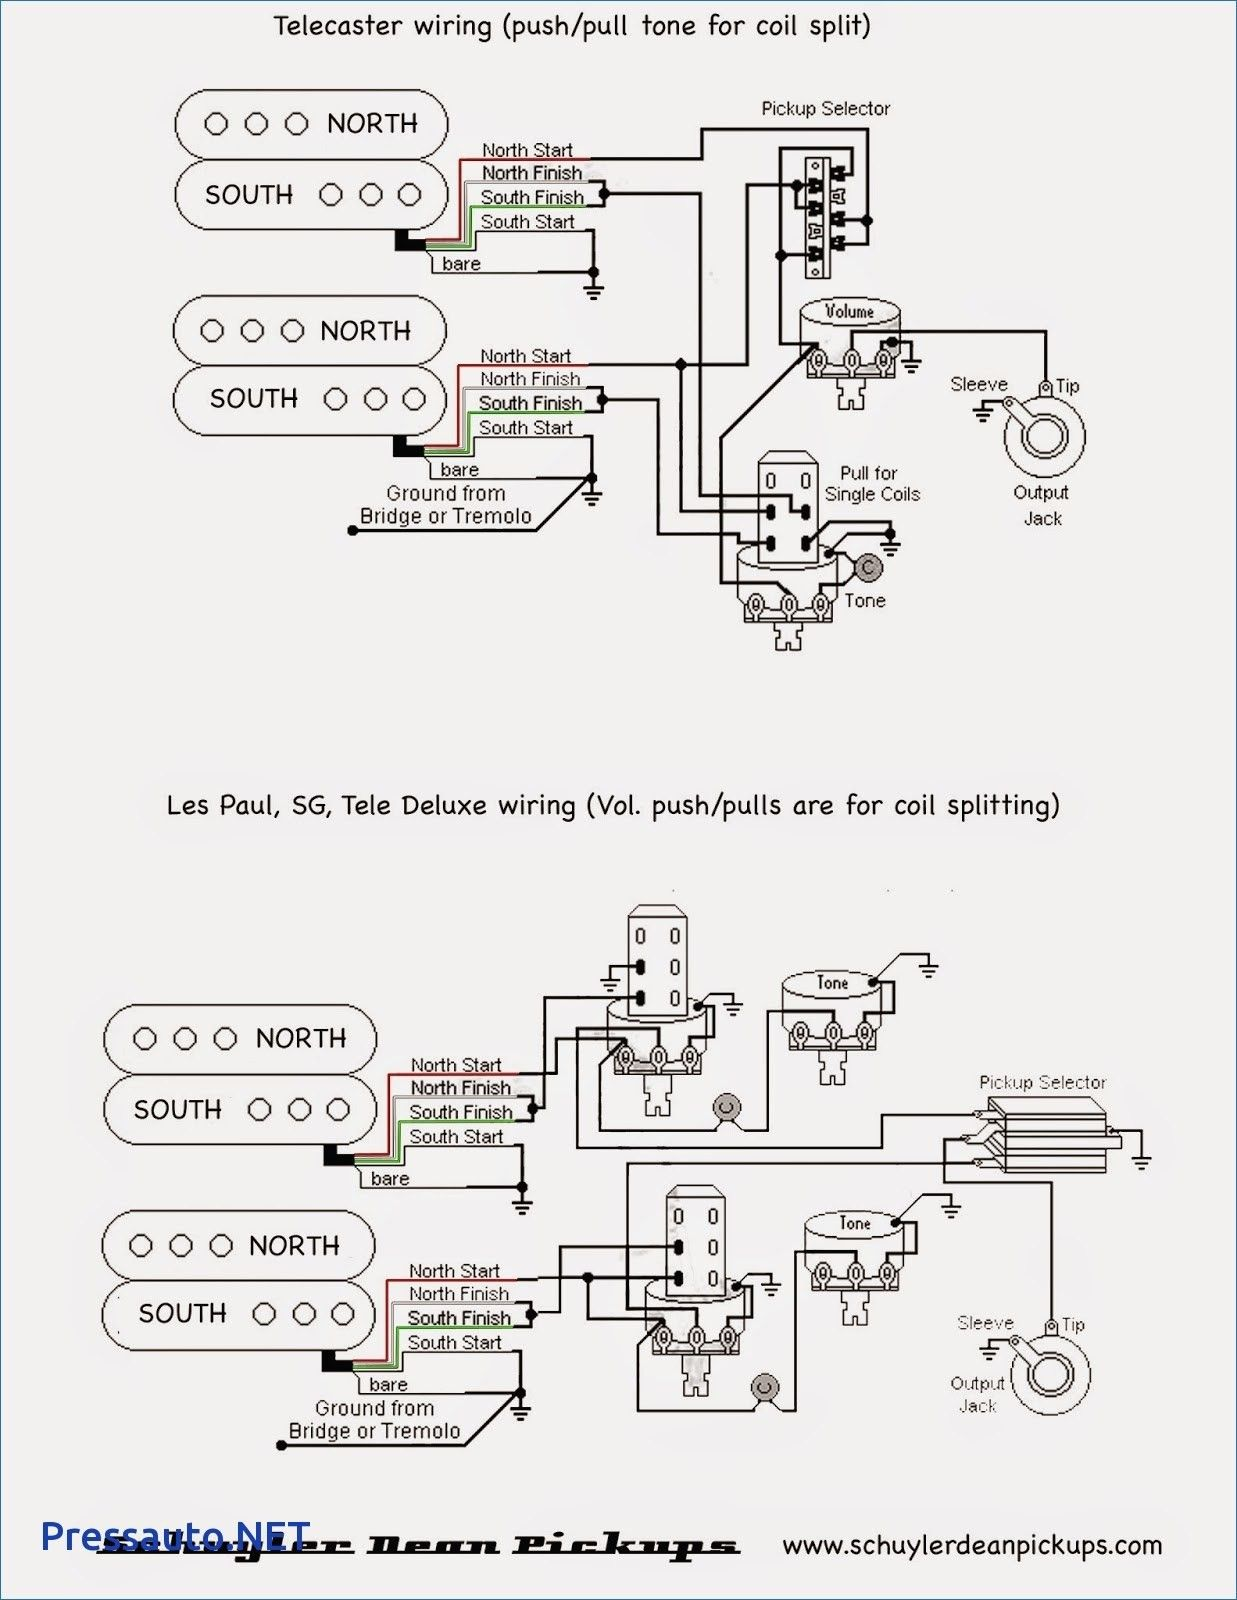 Unique Wiring Diagram Active Pickups Diagram Diagramtemplate Diagramsample Les Paul Wire Epiphone